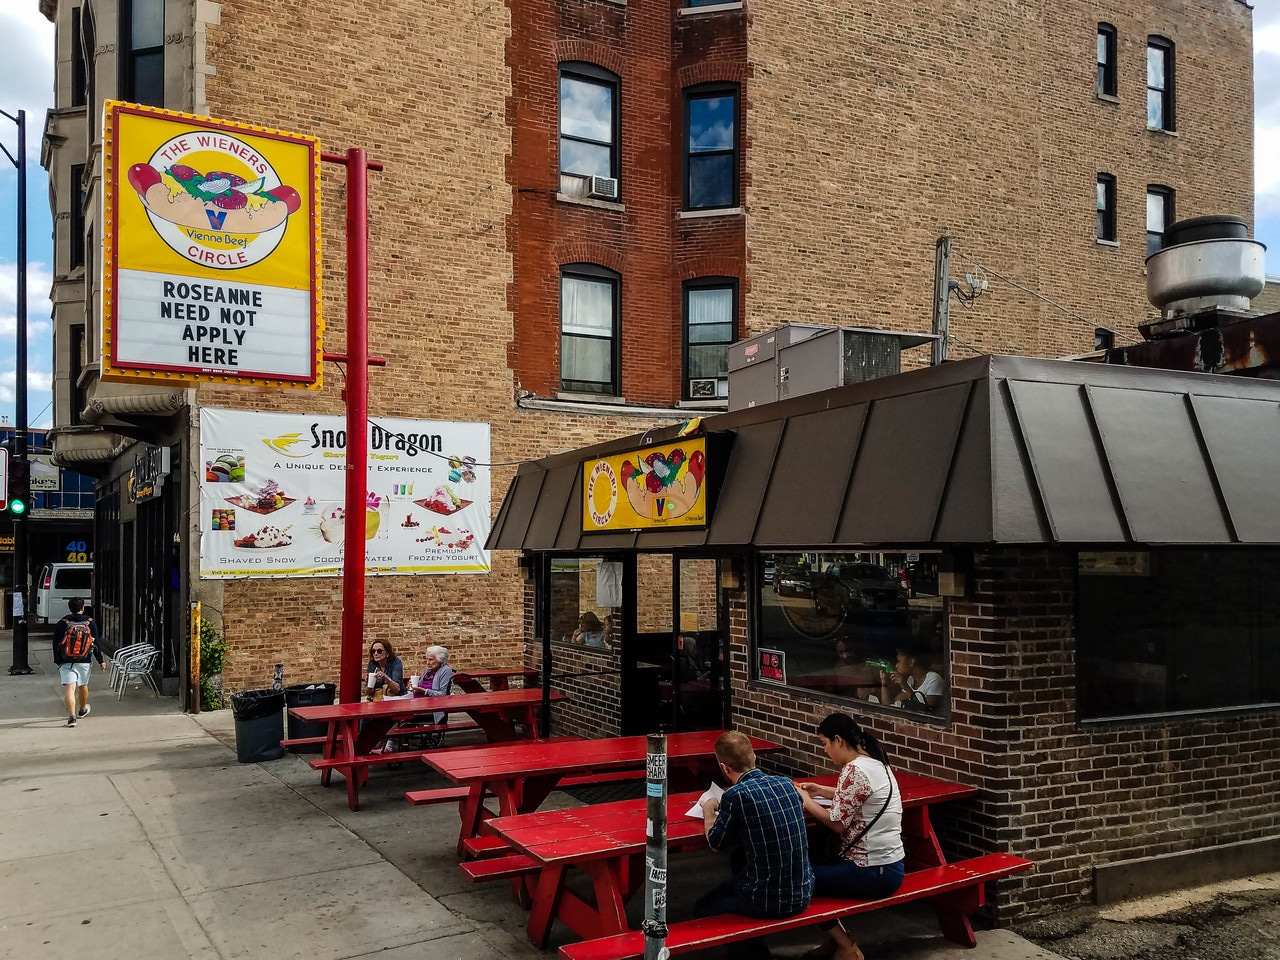 The Wiener's Circle Chicago